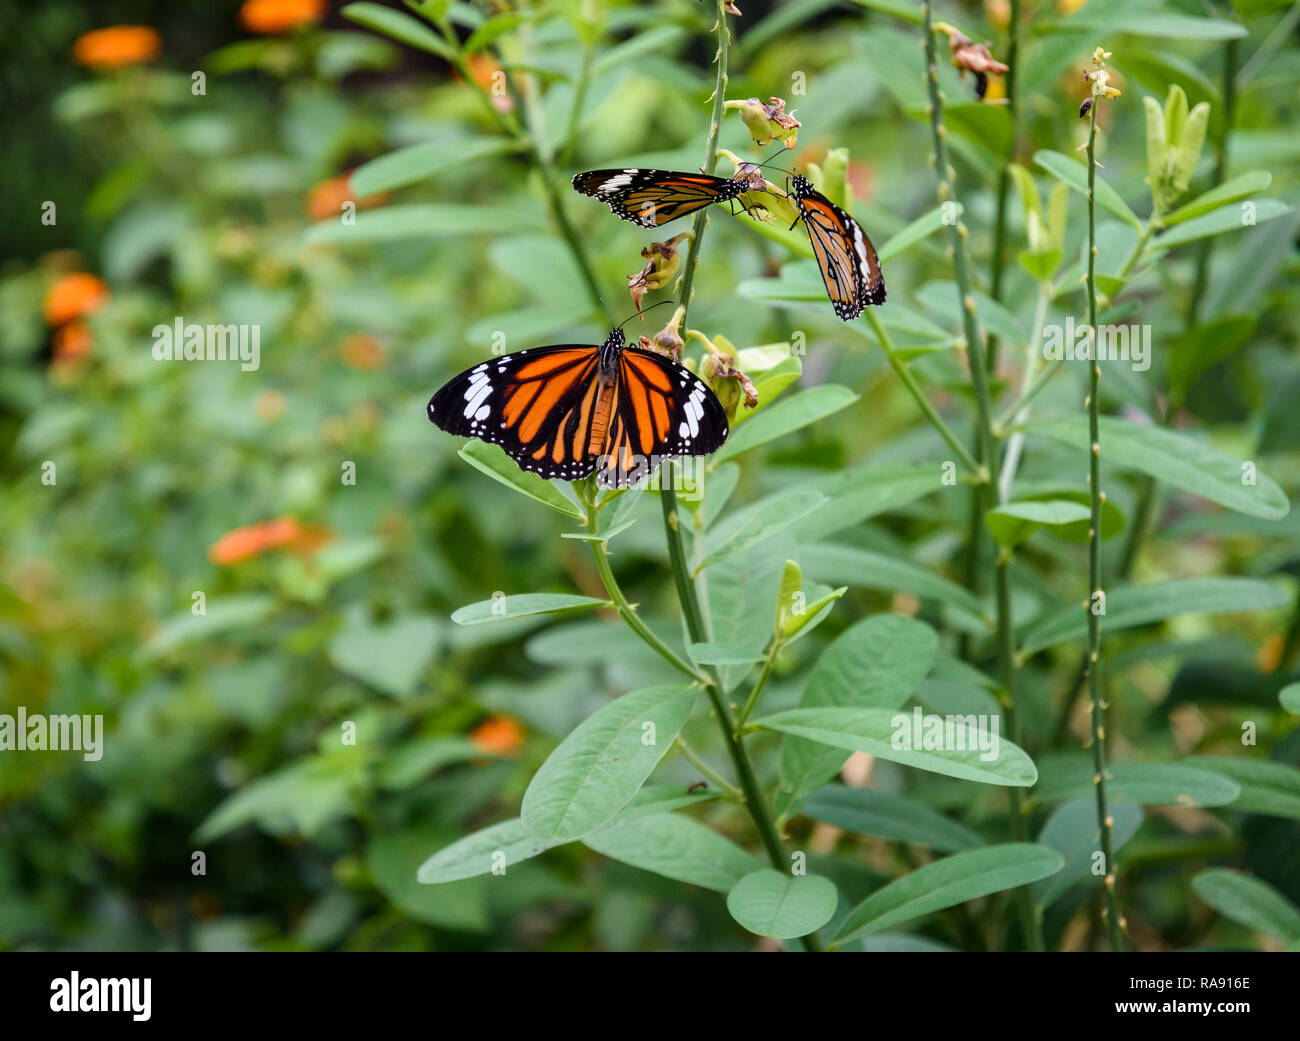 Common Tiger butterflies in Hong Kong Park - Stock Image